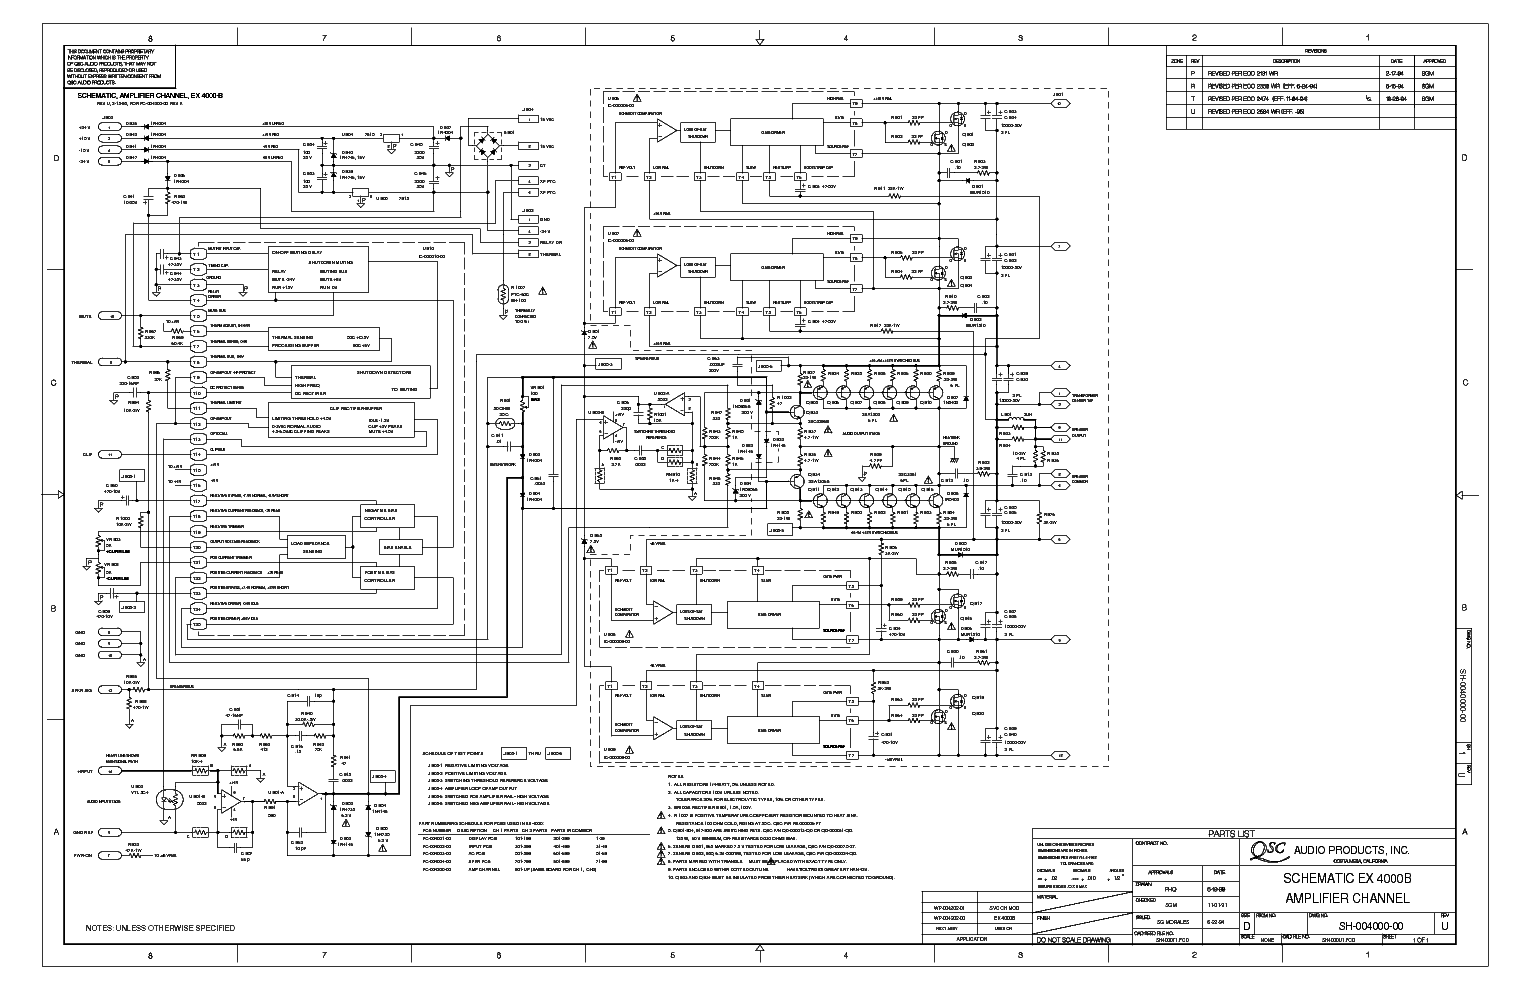 qsc_ex-4000b_sch.pdf_1 Qsc Plx Schematic Diagram on isa 300ti, pl340 power supply, gx 3 amplifier, k-12 ksub, 1400 power amp, k10 speaker, usa 900 amplifier,